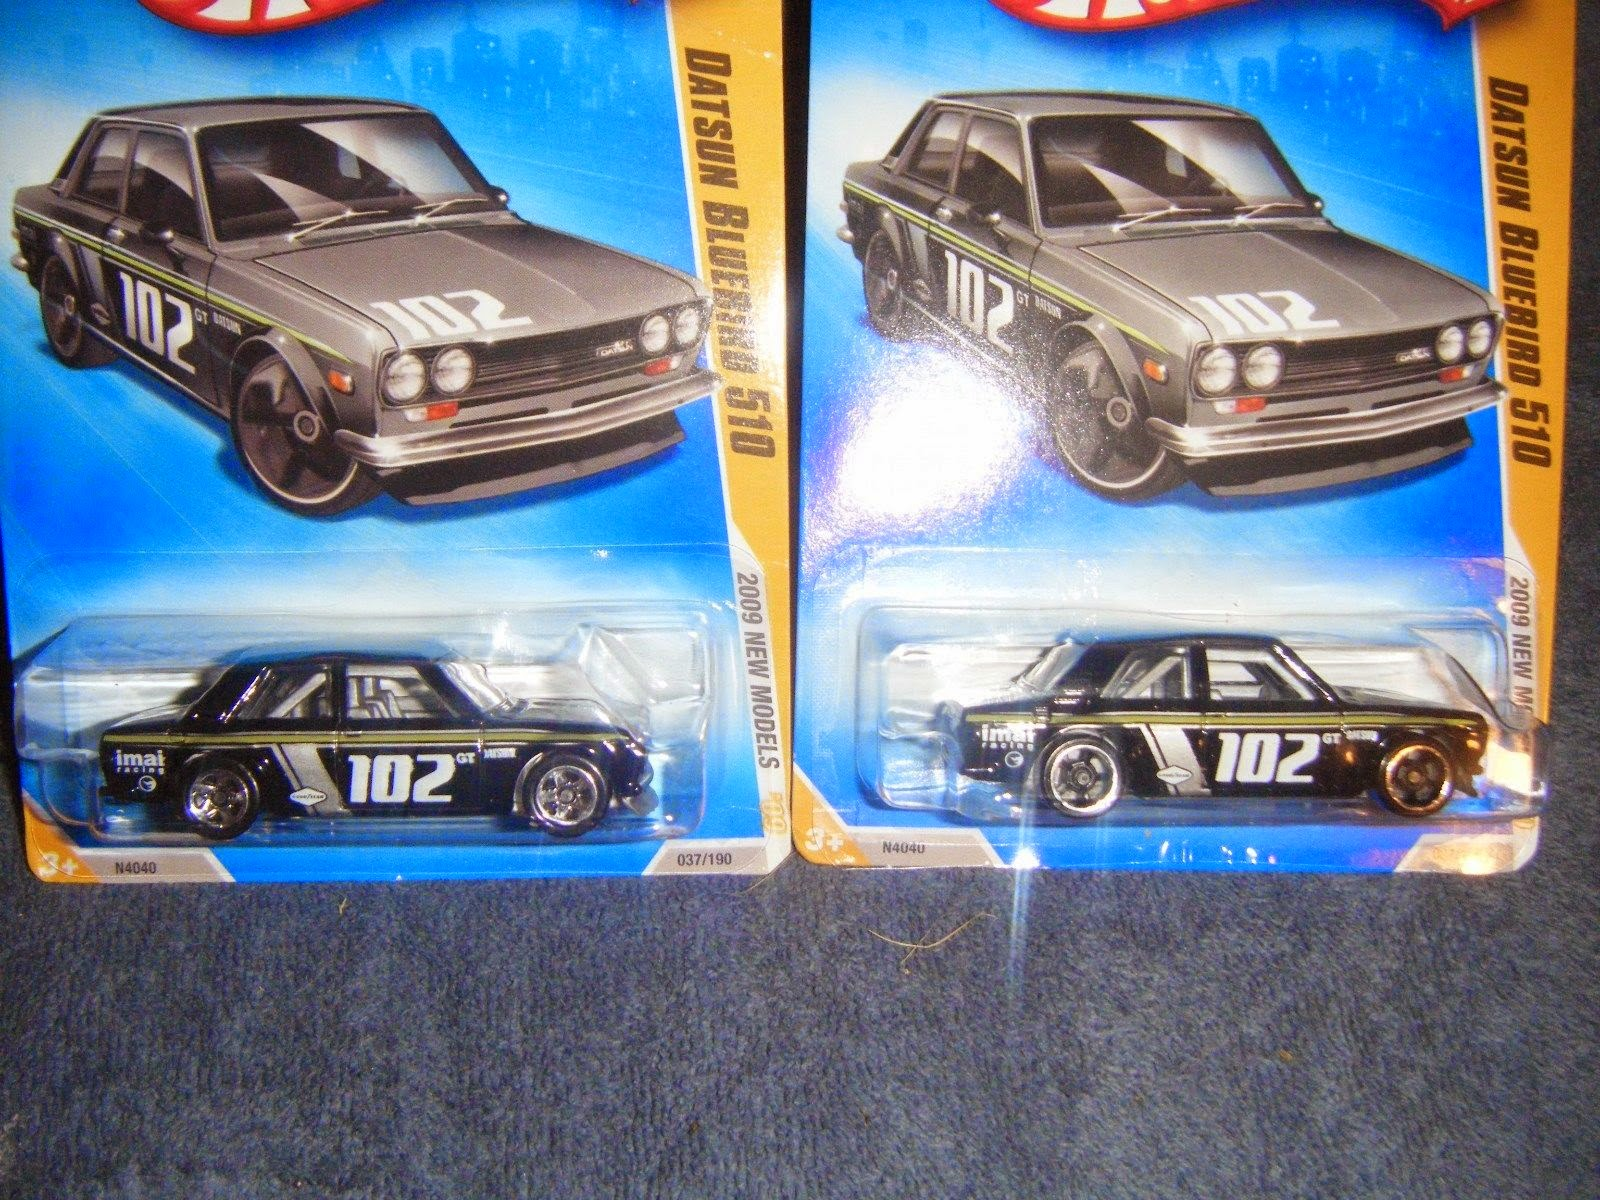 Break those piggy banks a huge collection of super rare hot wheels the 5sp datsun is becoming the grandaddy of jdm variations and is easily one of the hardest variations to find for any vari collector altavistaventures Choice Image